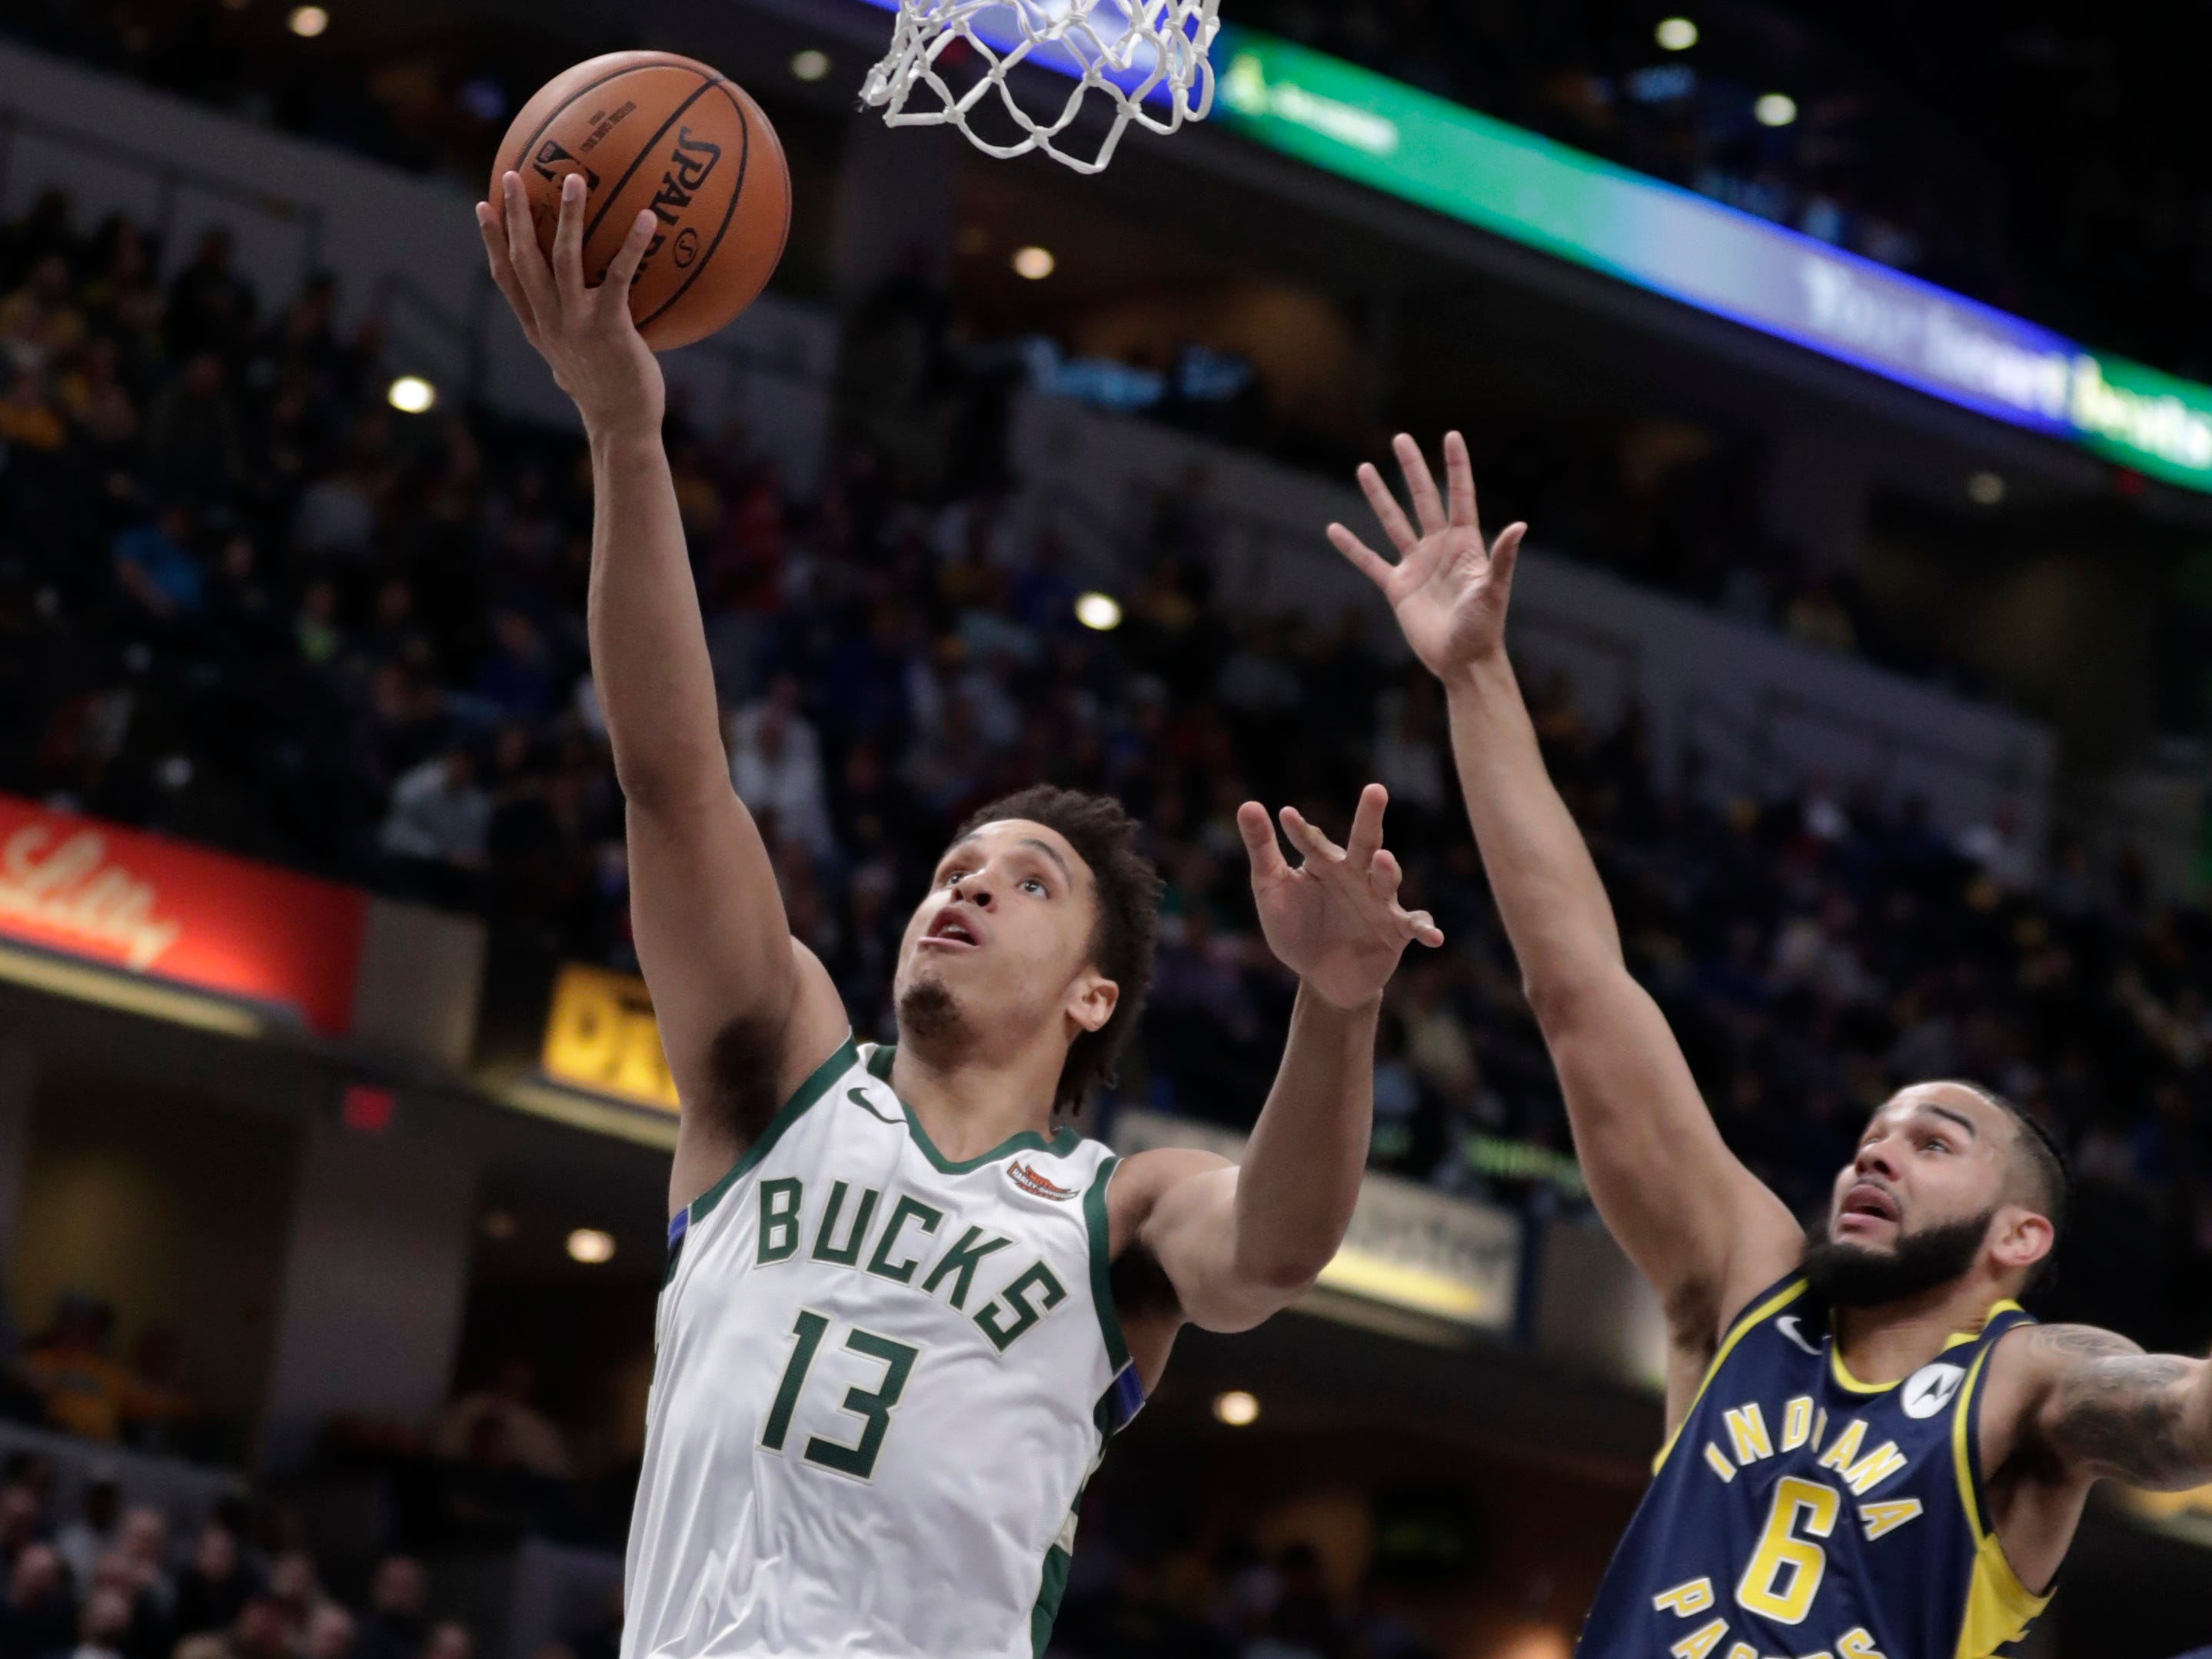 Bucks guard Malcolm Brogdon gets to the rim for a layup ahead of Pacers guard Cory Joseph during the second half Wednesday night.